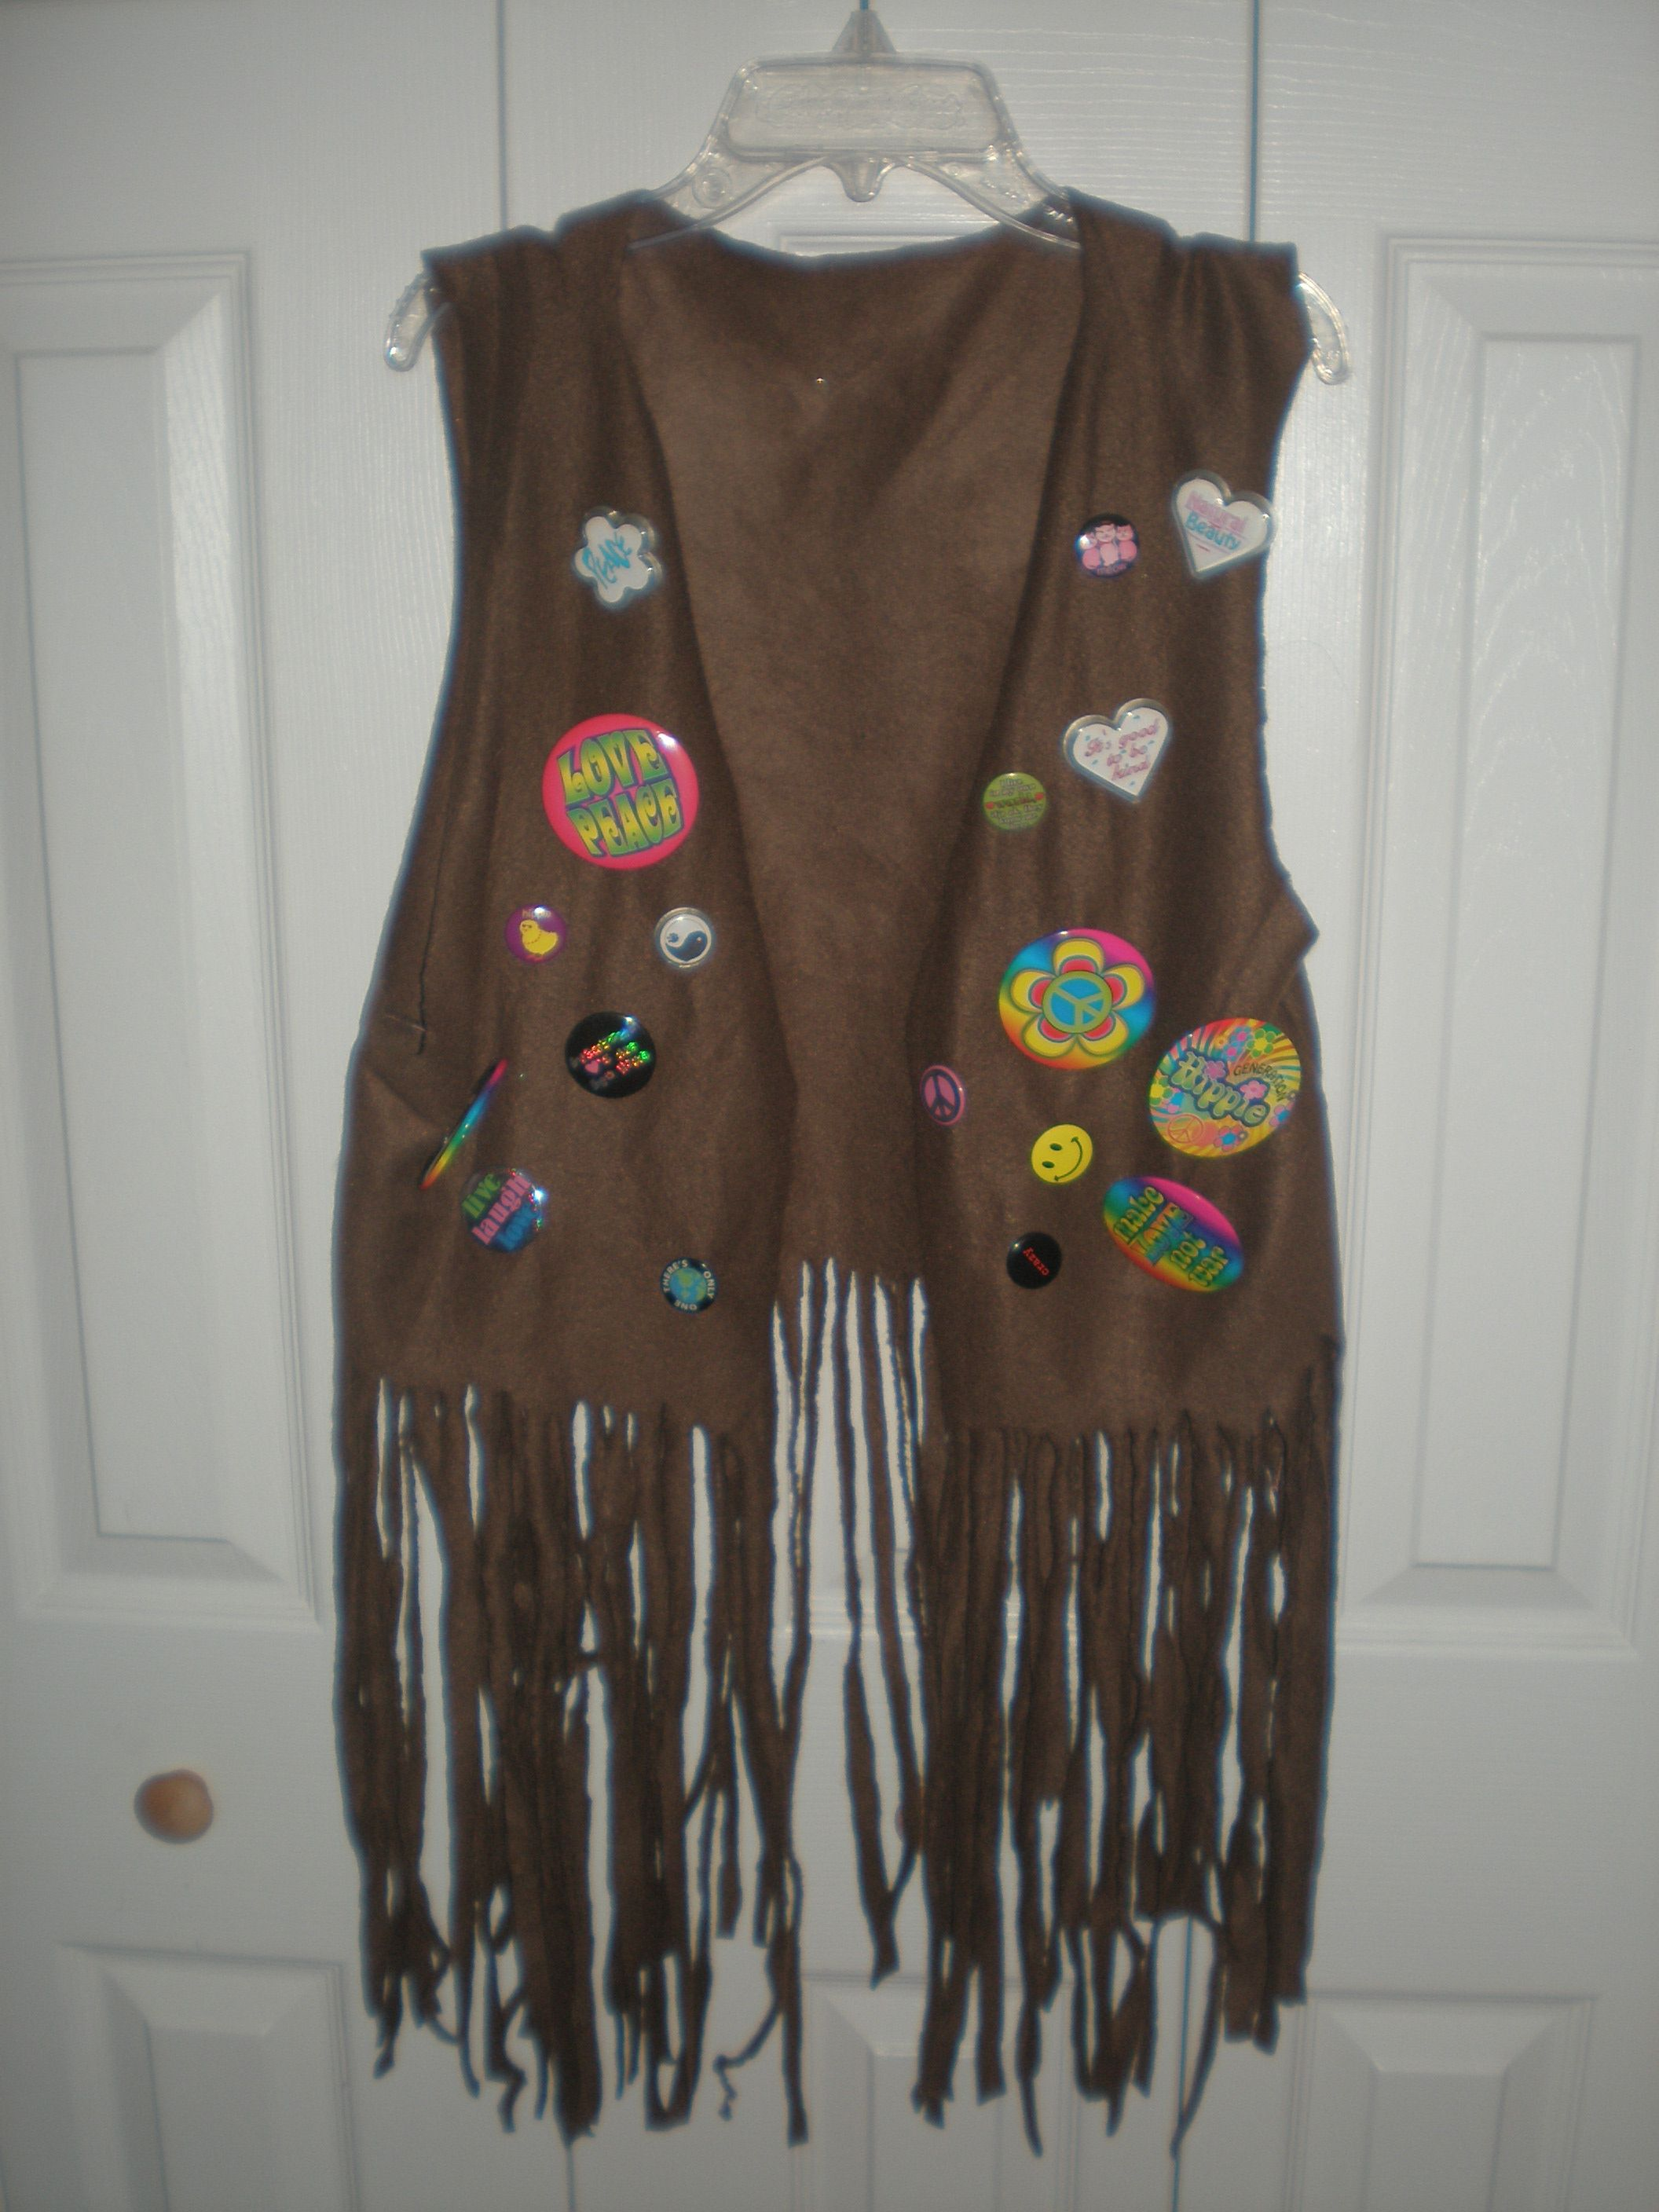 dccc52ce0e3 I decided to be a hippie for Halloween this year but I couldn t find a vest  with fringe. My mom and I made this one out of a fleece throw.